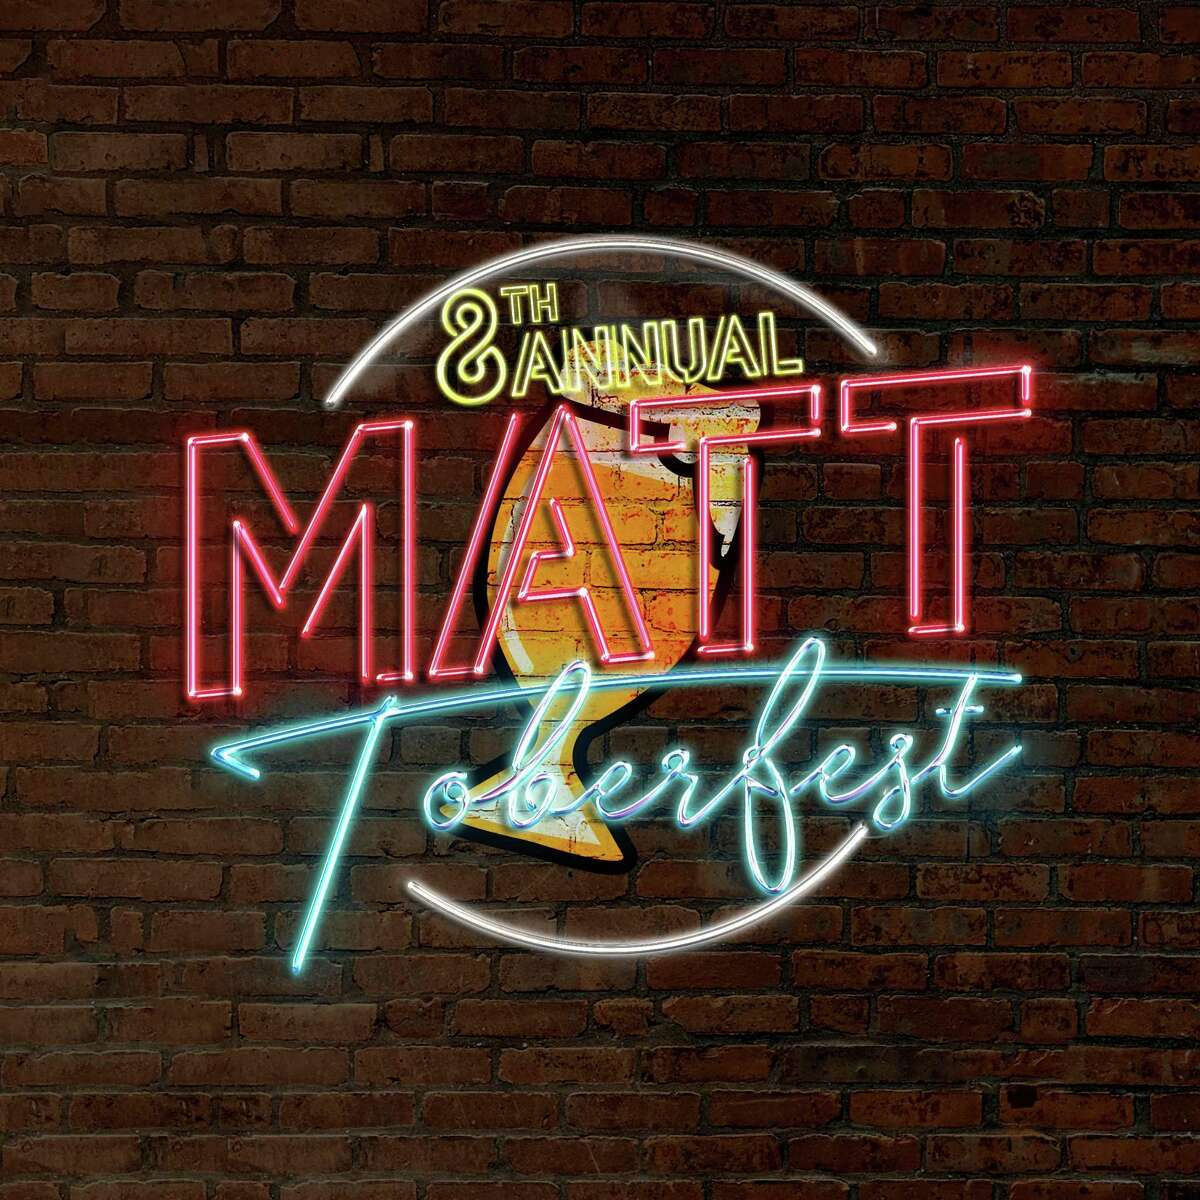 After two years of construction, the Mattatuck Museum is once again open to the public with new exhibitions and an exciting roster of programs and workshops for adults, kids, and families. The 8th annual Matt-Toberfest is set for Aug. 19.